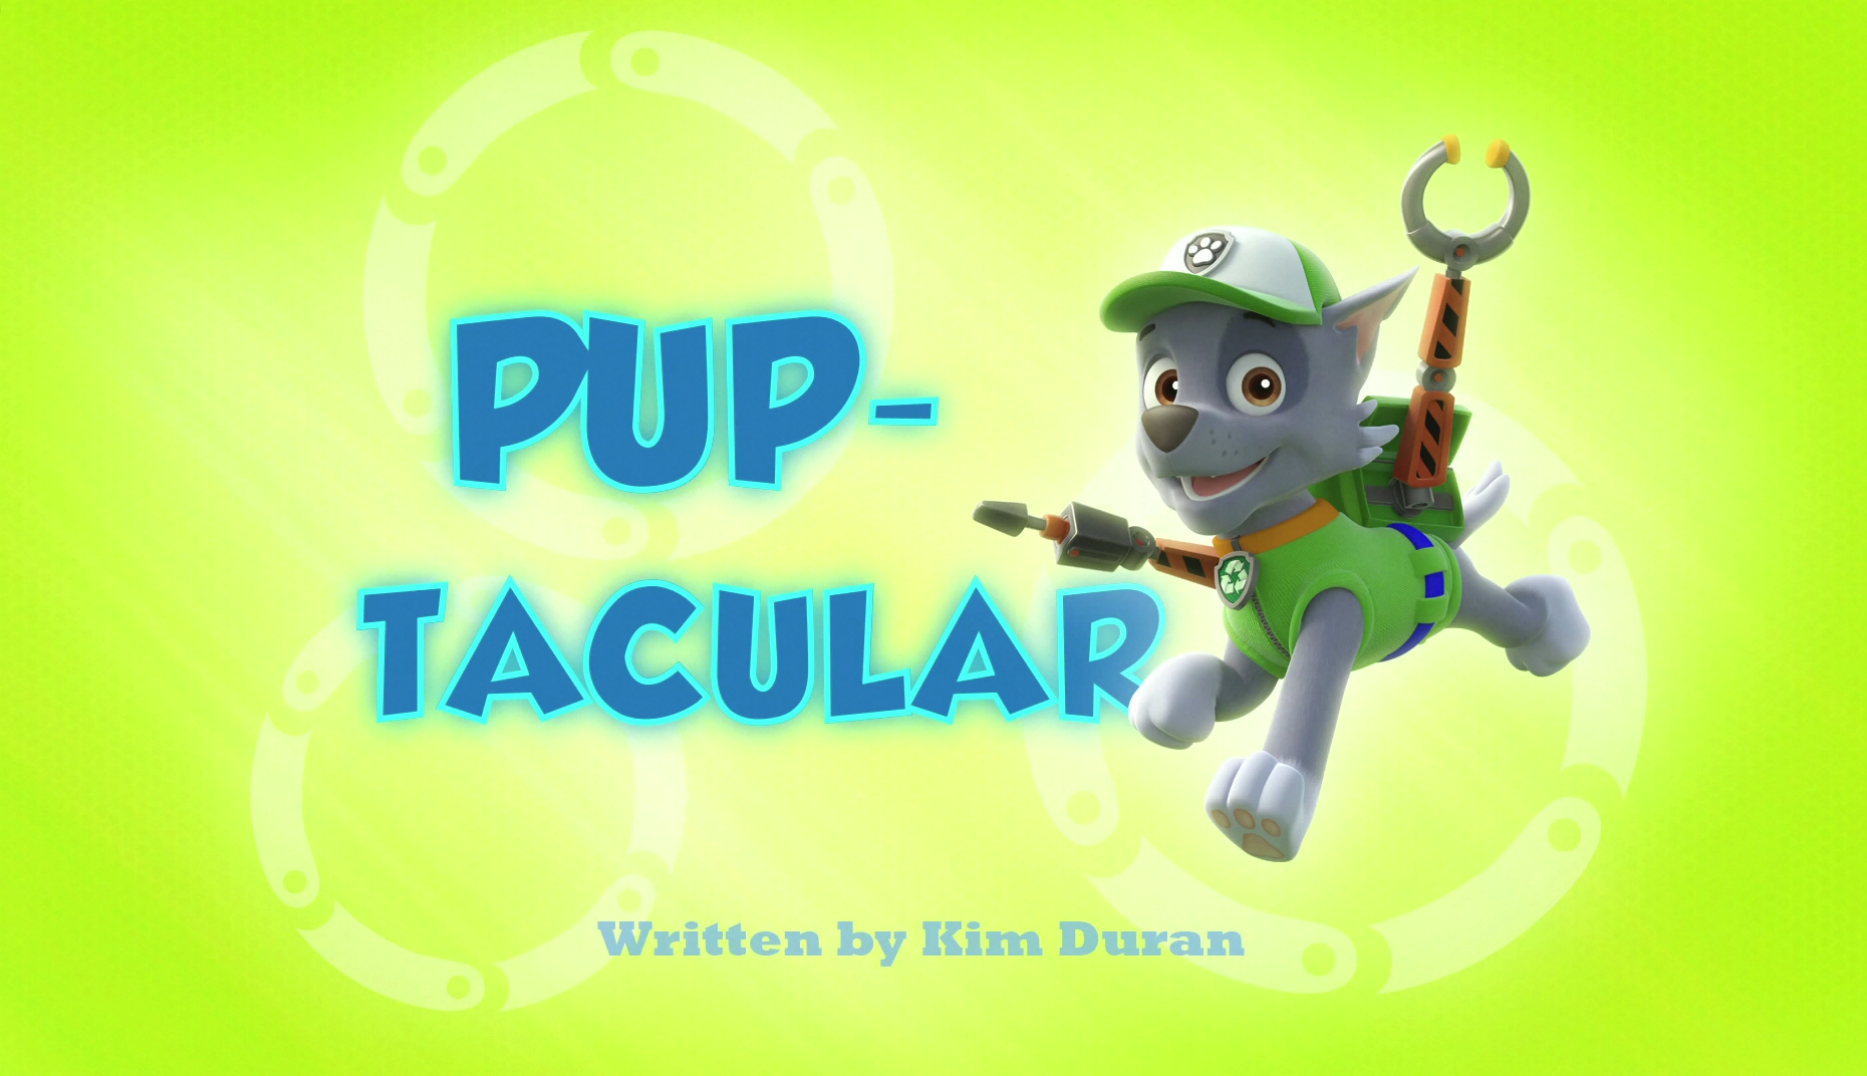 Pup Tacular Paw Patrol Wiki Fandom Powered By Wikia